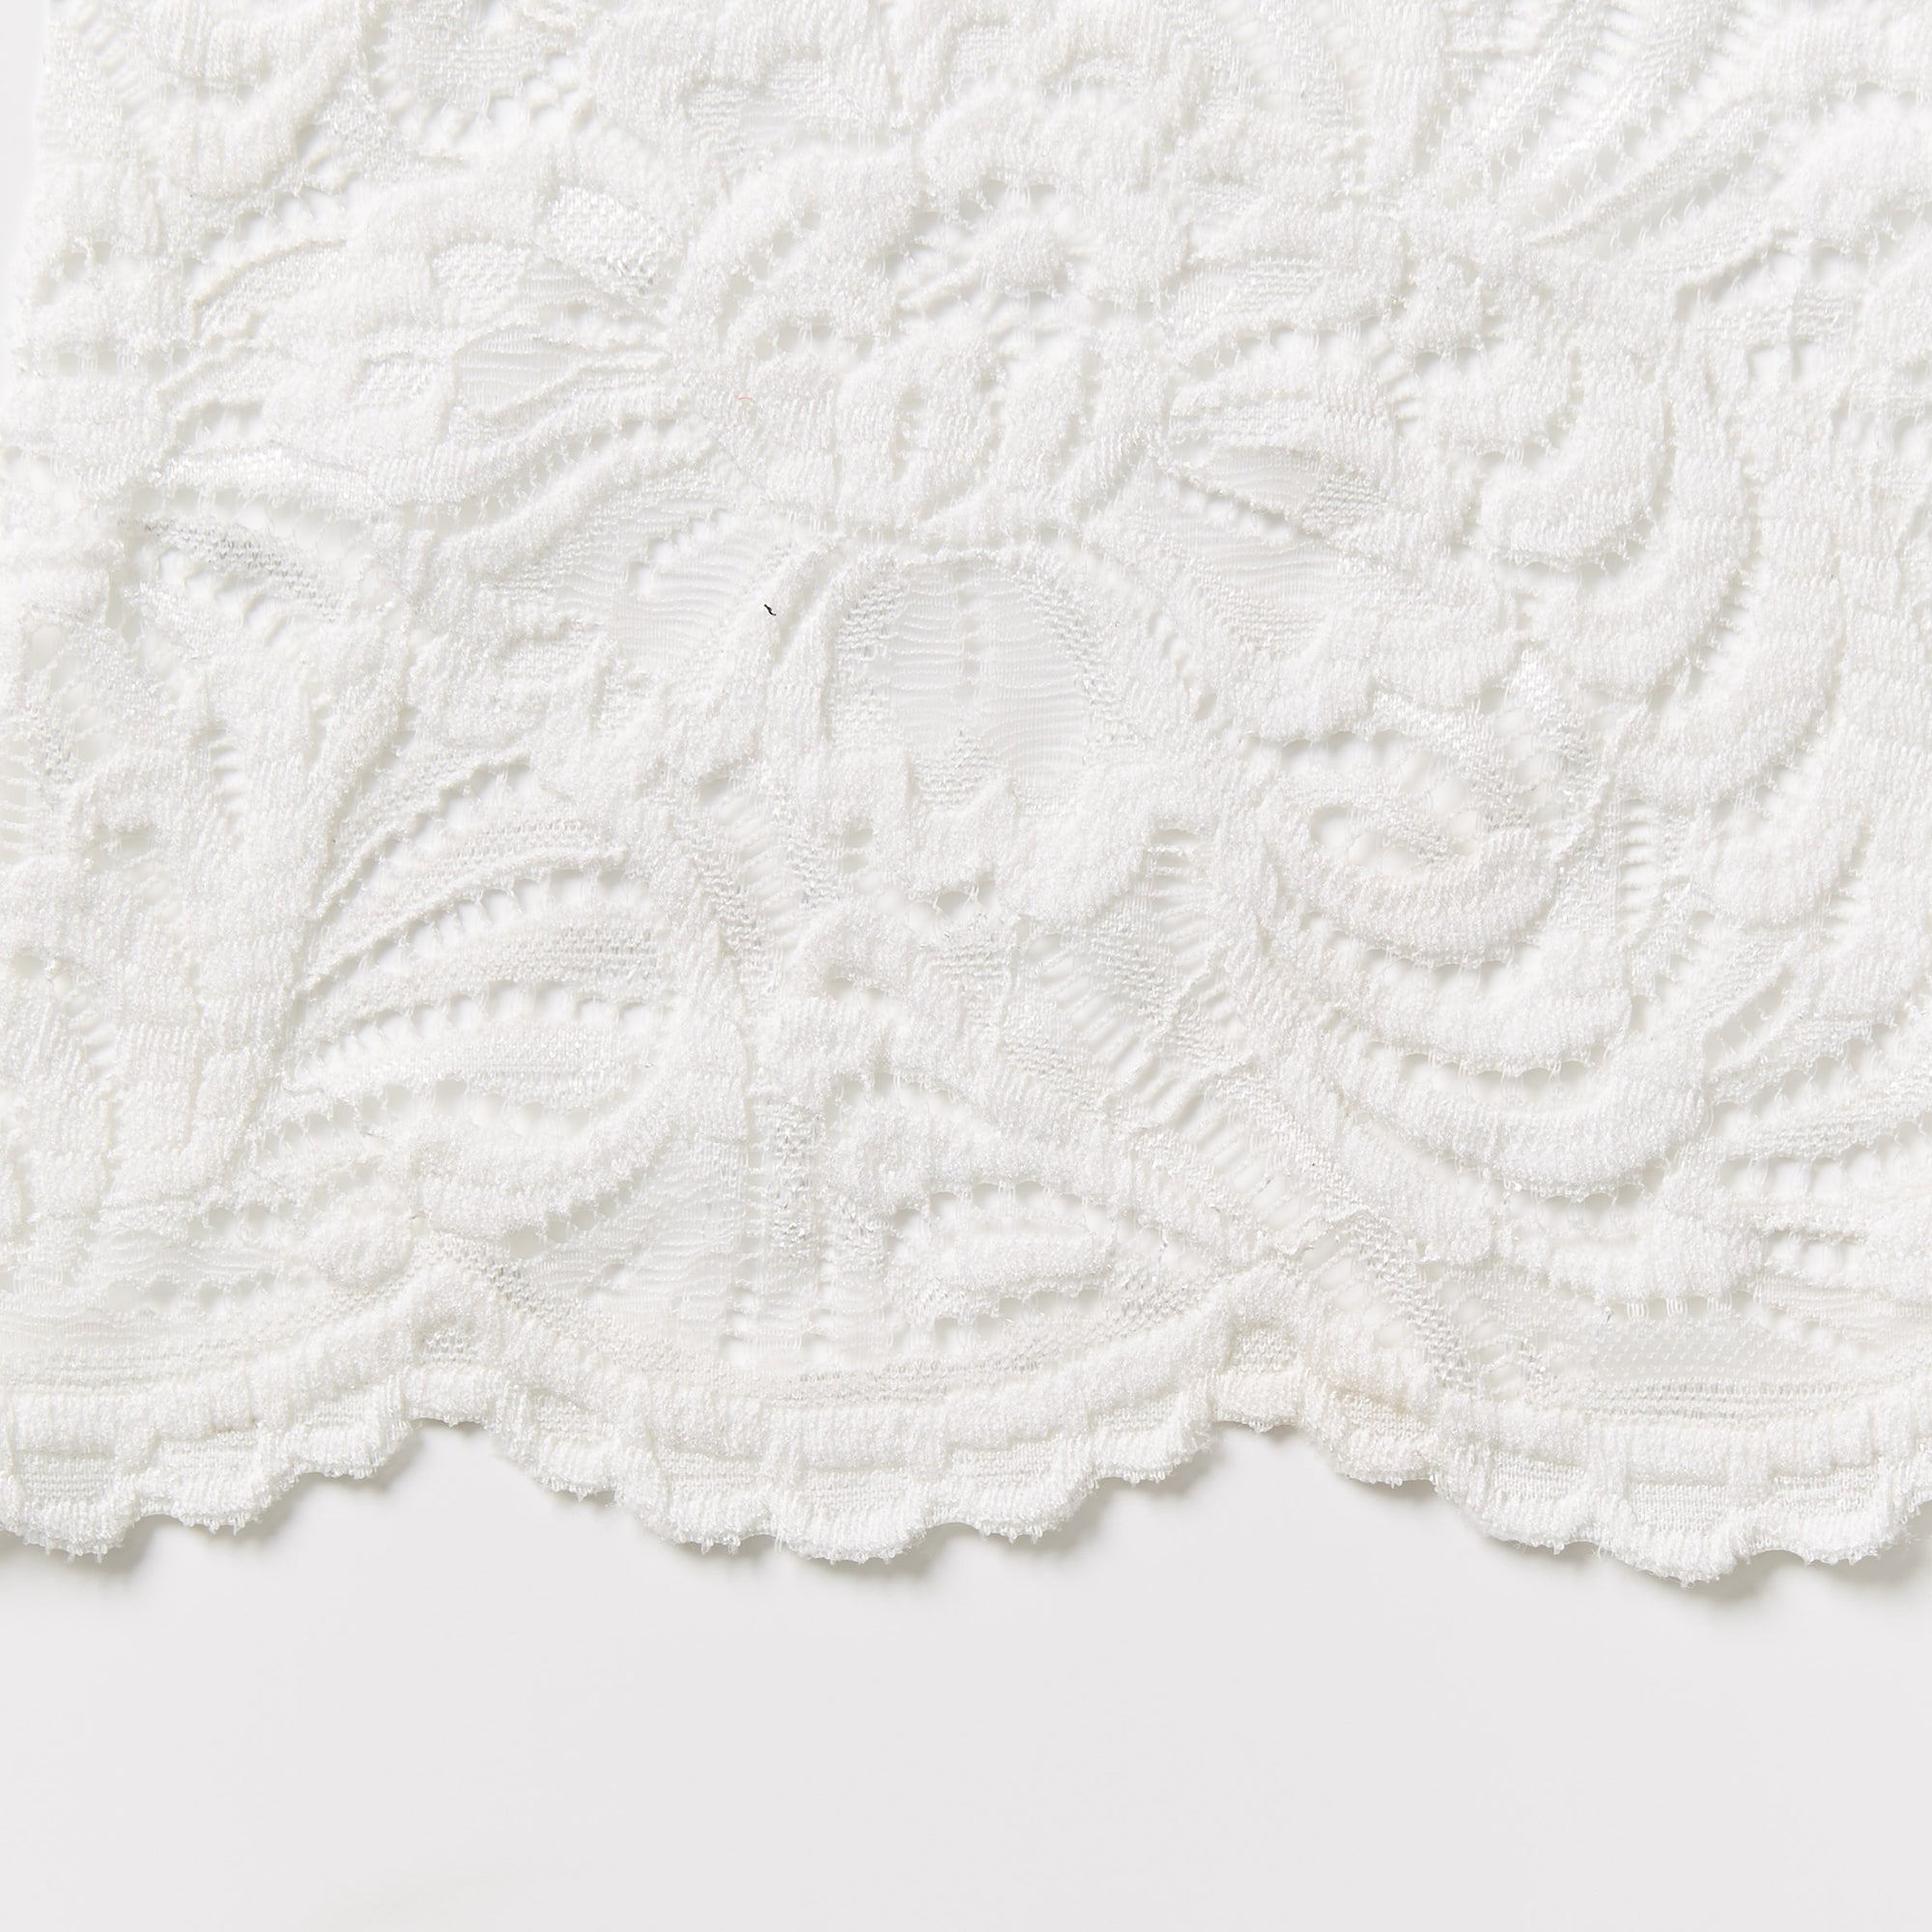 fleur ivory Stretch lace traditional design doubled scalloped